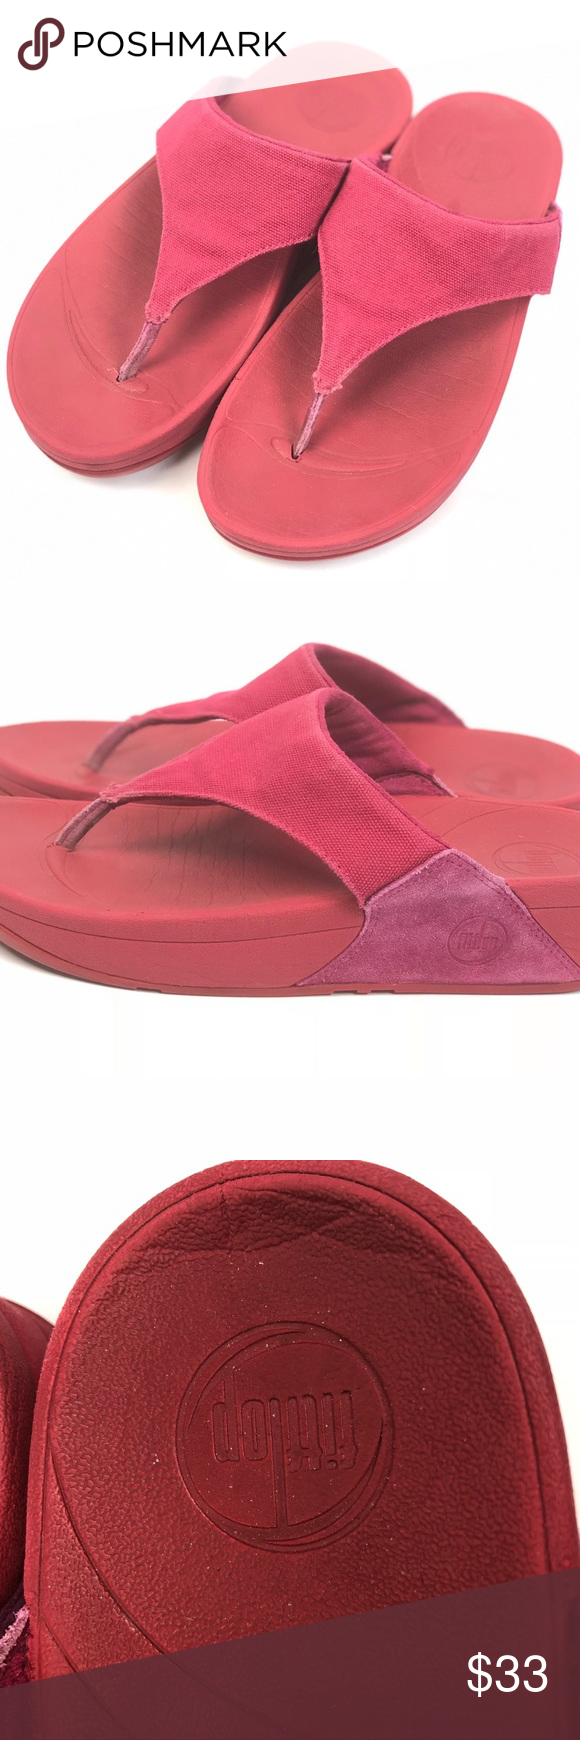 4f771252ccffdd FITFLOP Red Canvas Sculpting Thong Sandals Sz 7 Red canvas and suede  sculpting sandals by fitflop. Good preowned condition